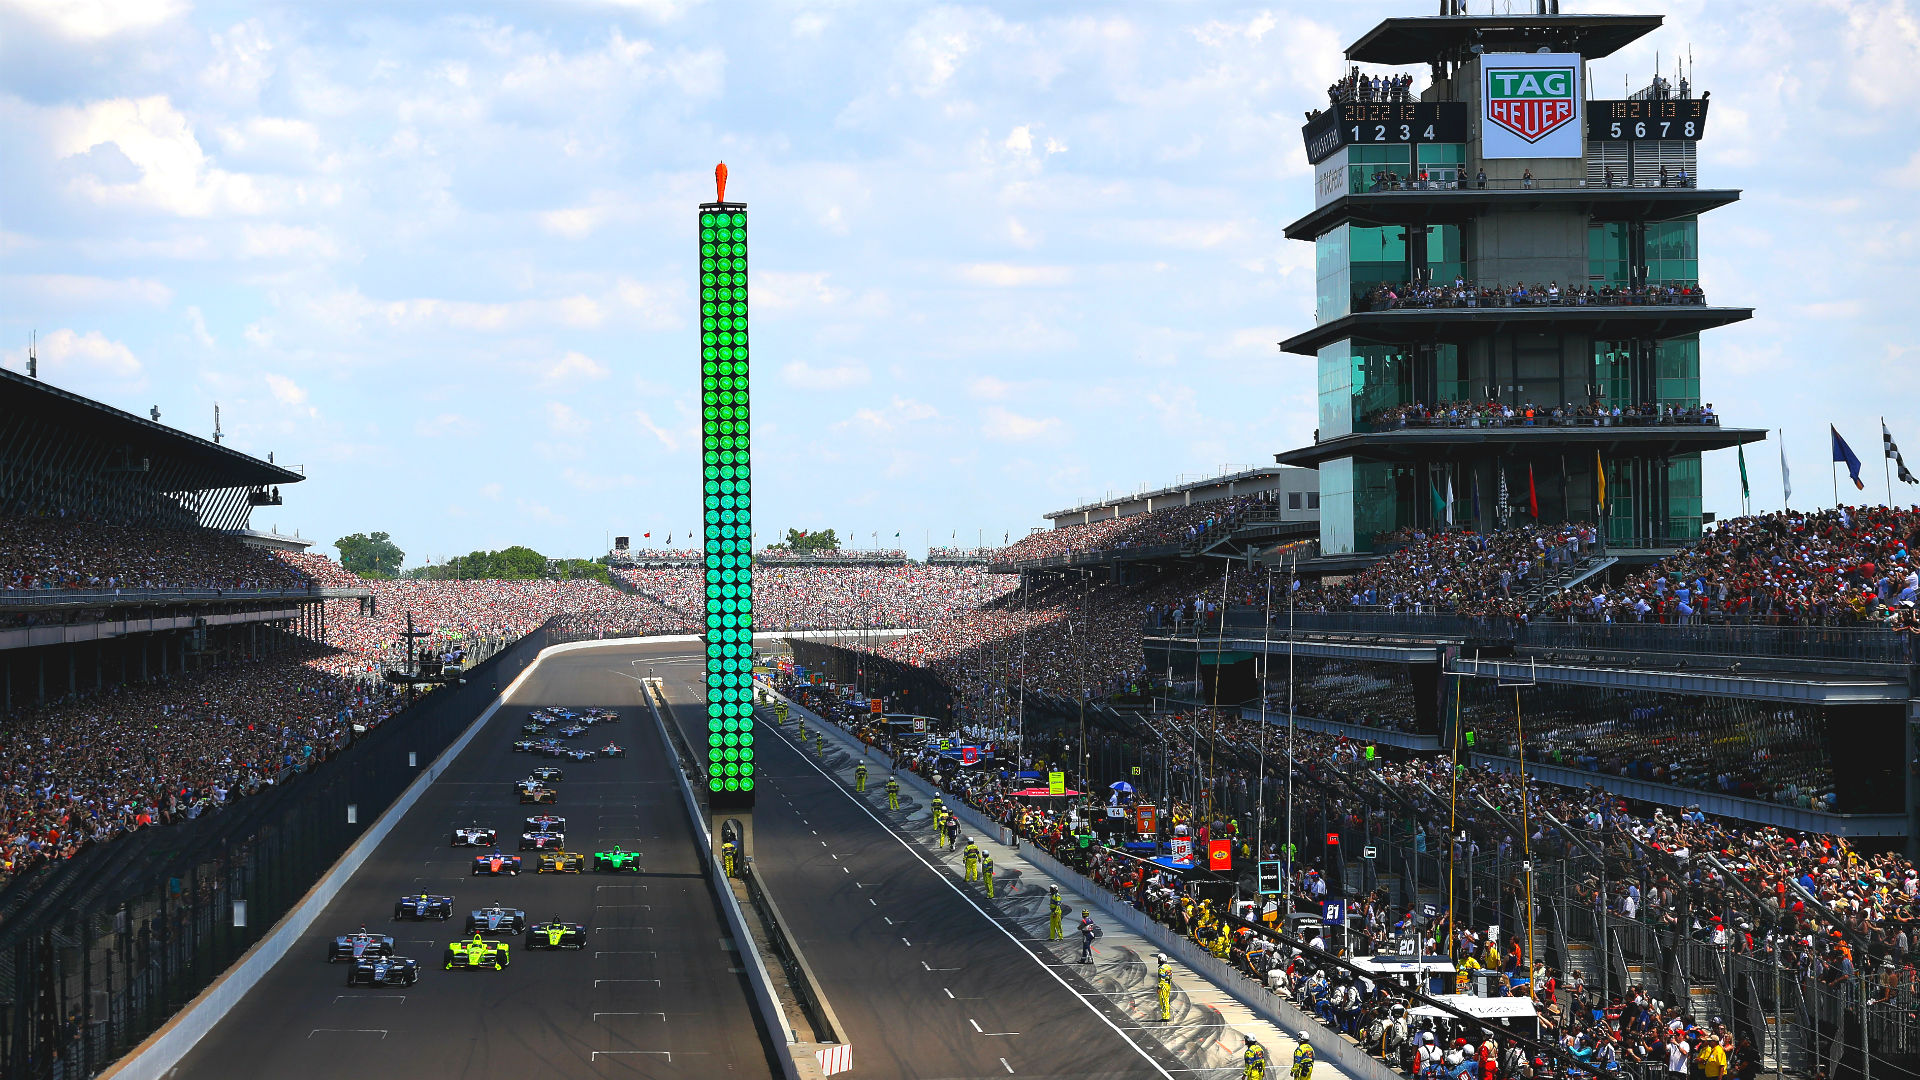 When is the Indy 500 in 2020? New date, start time other details for the race in Indianapolis